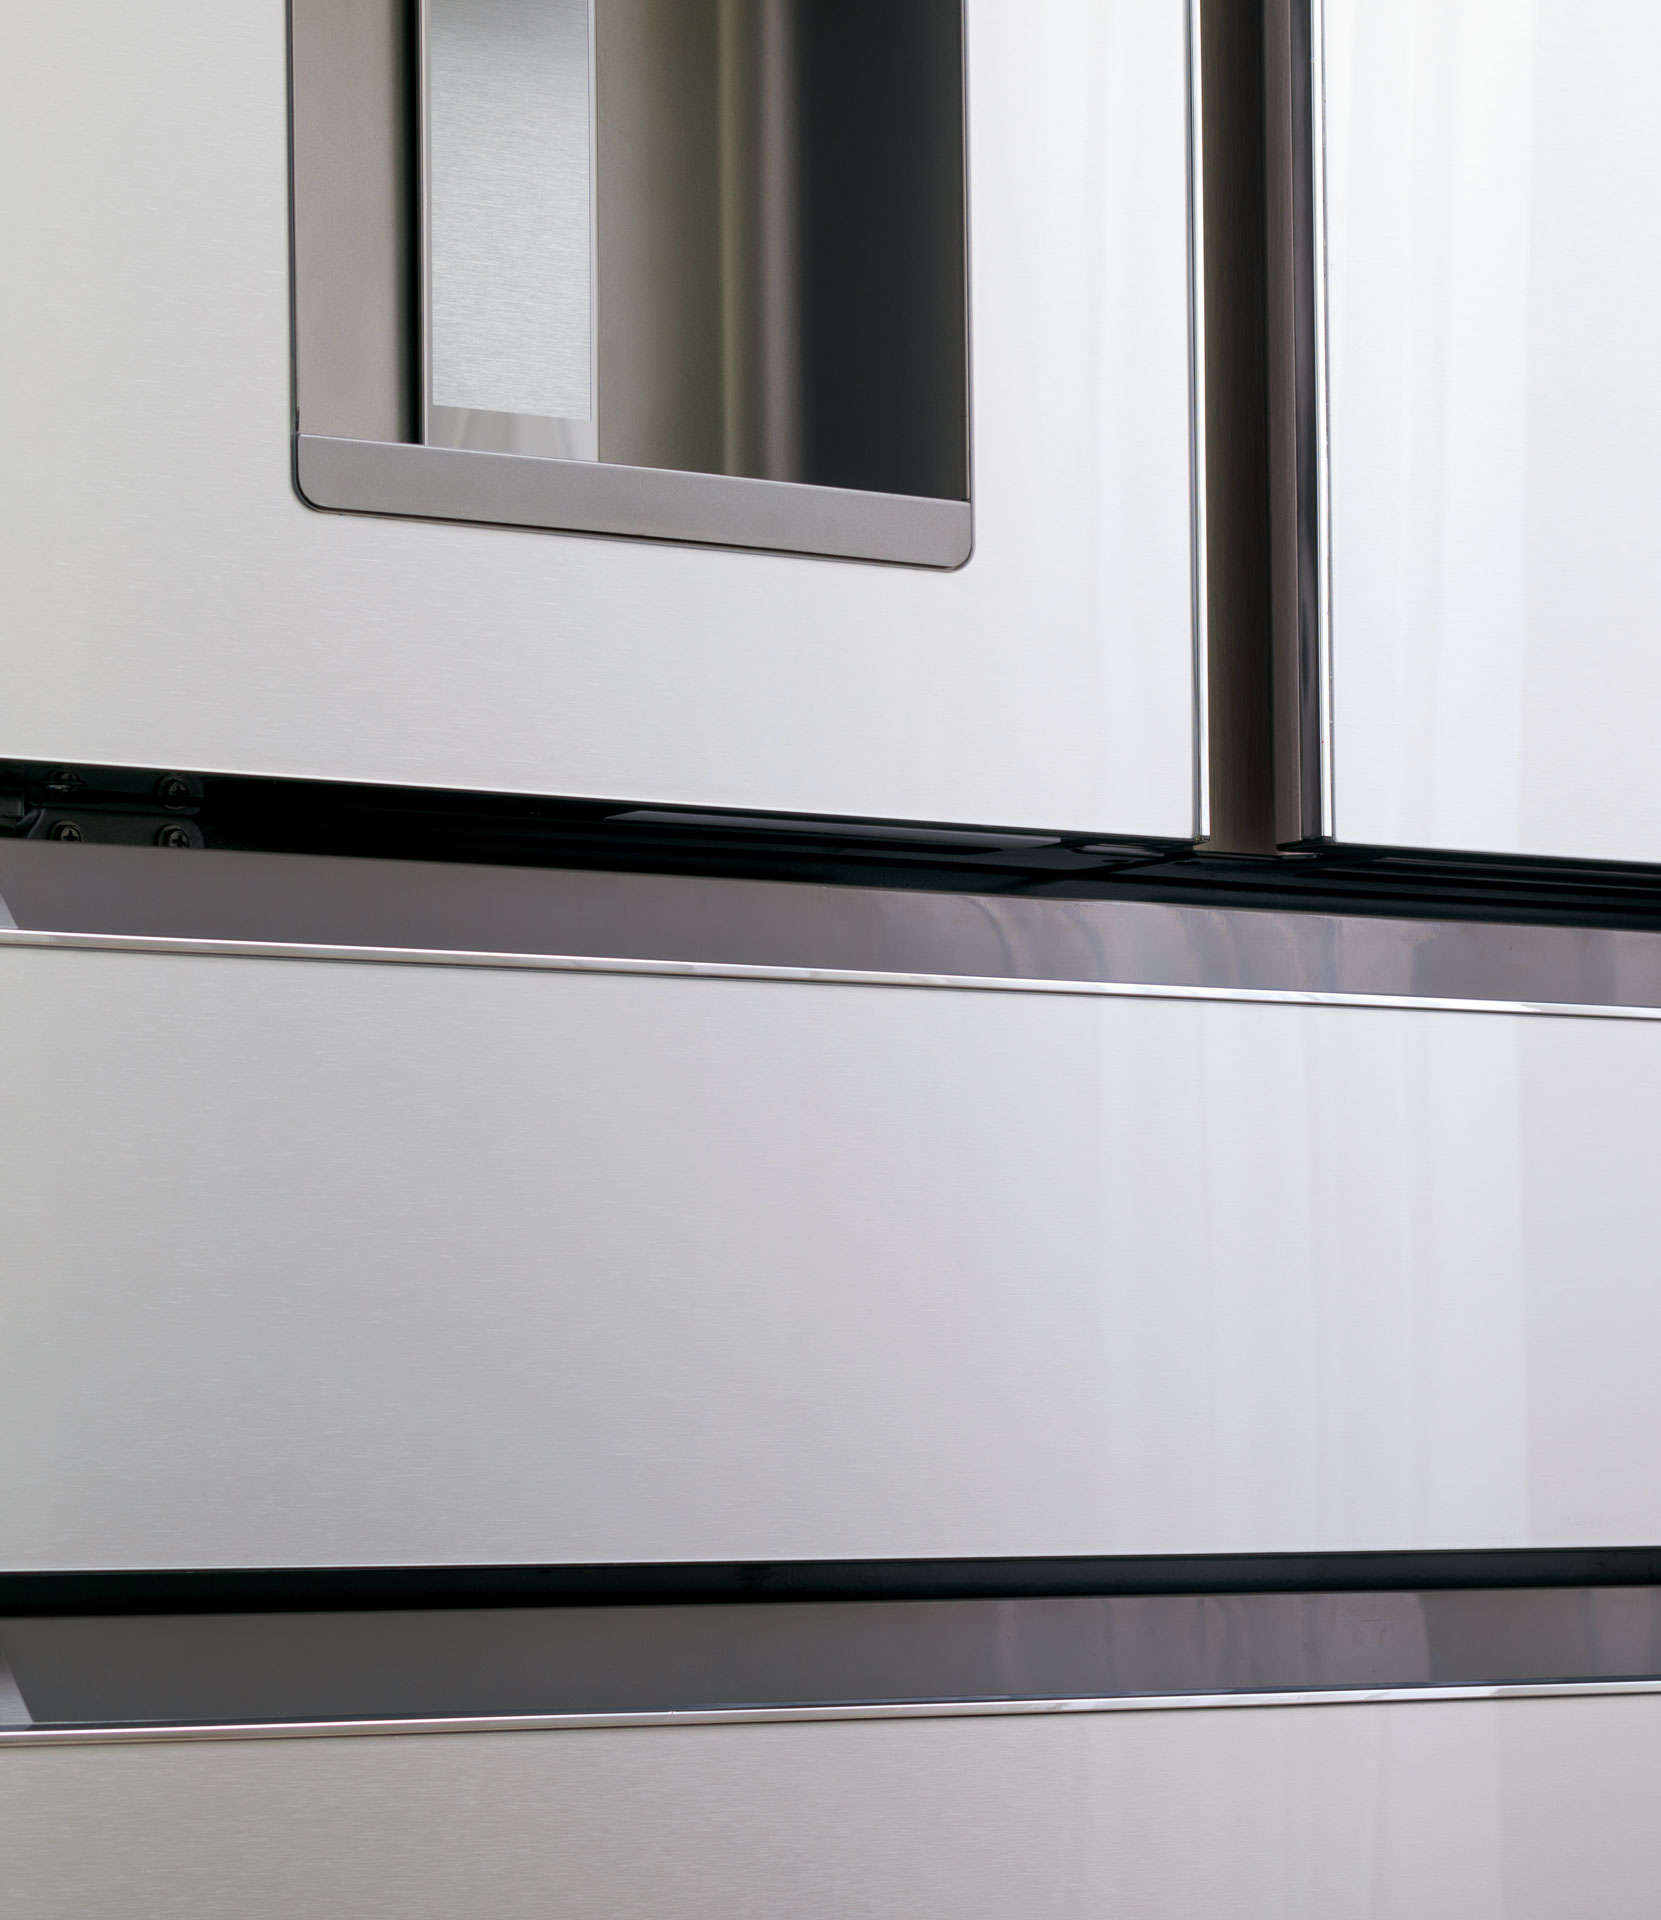 Modern Glass refrigerator finish